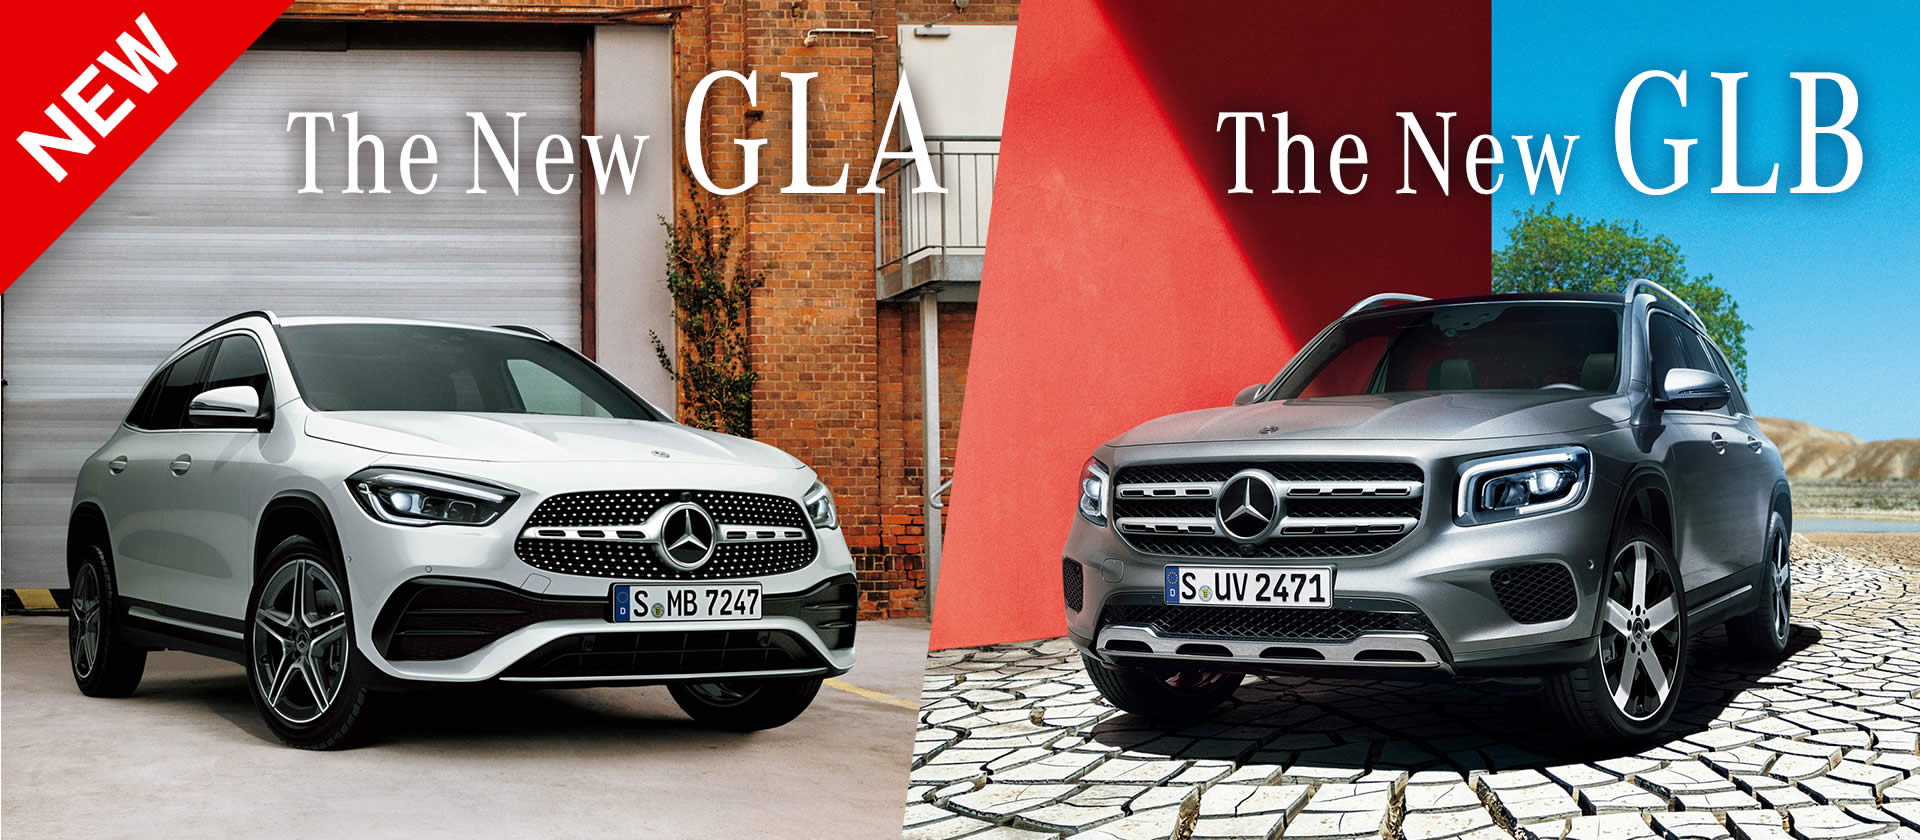 The New GLA / The New GLB